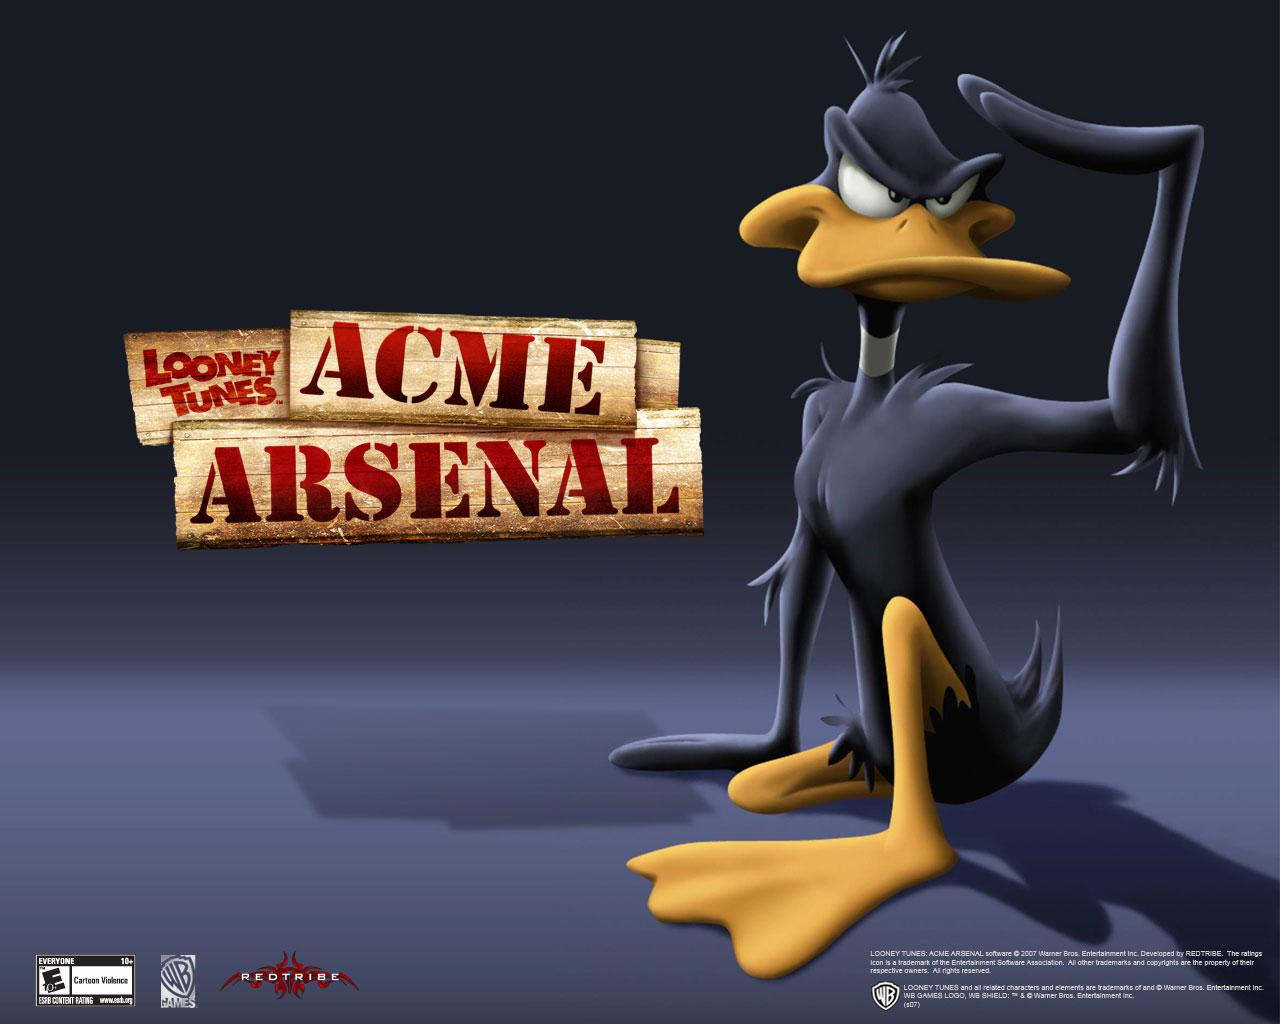 daffy duck Wallpaper and Background Image | 1280x1024 | ID:439227 ...